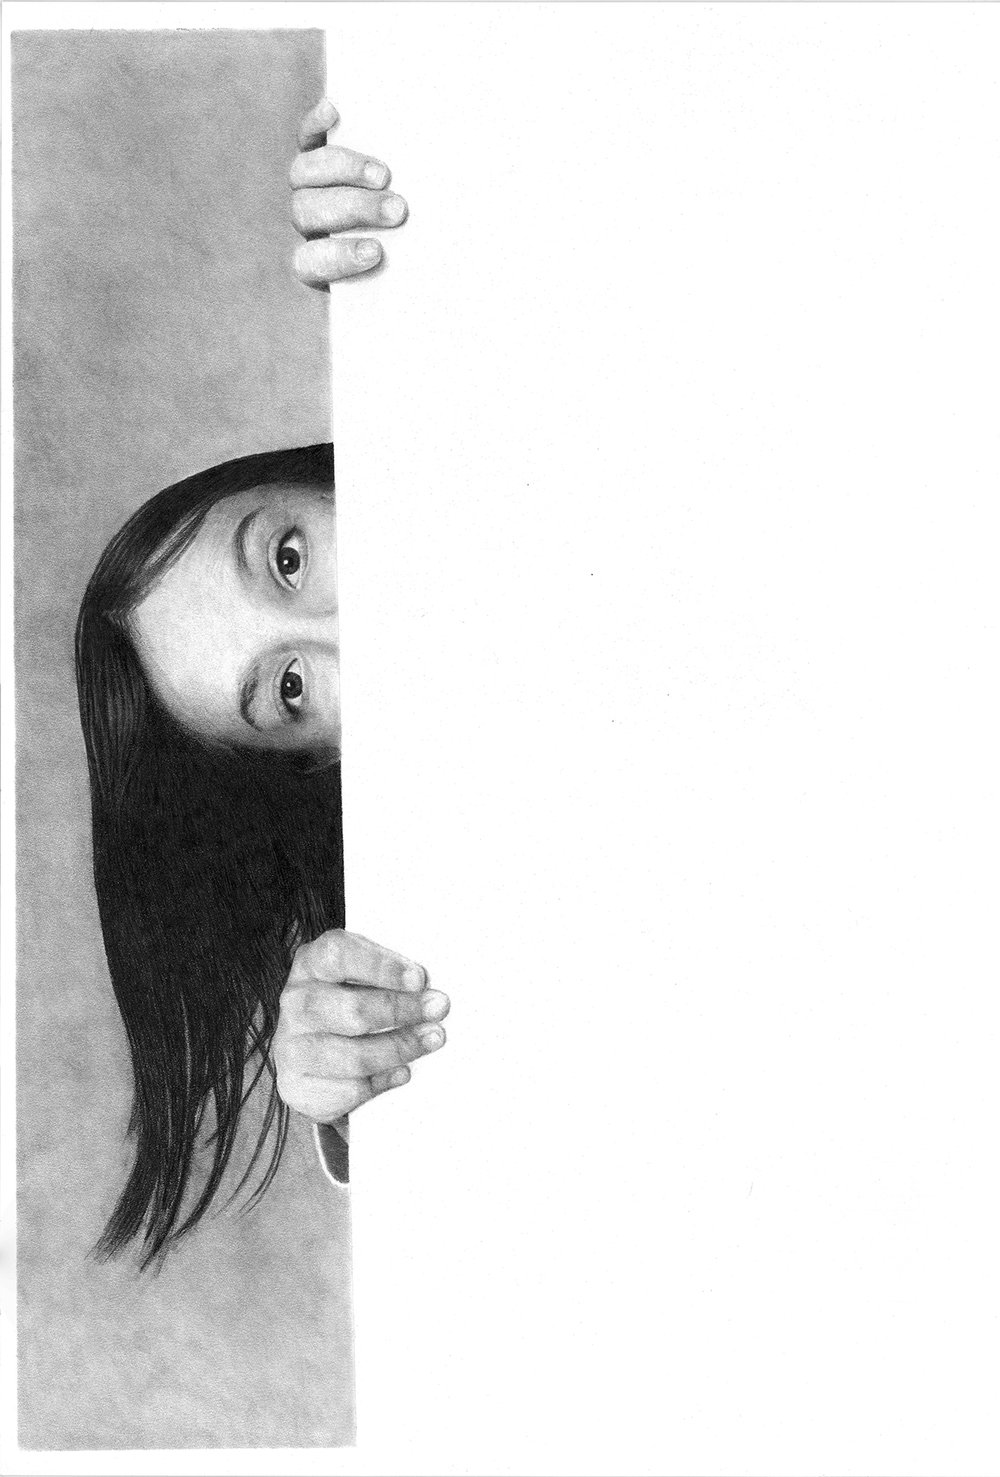 Peek#Graphite on paper#22 x 15 inches#$2500